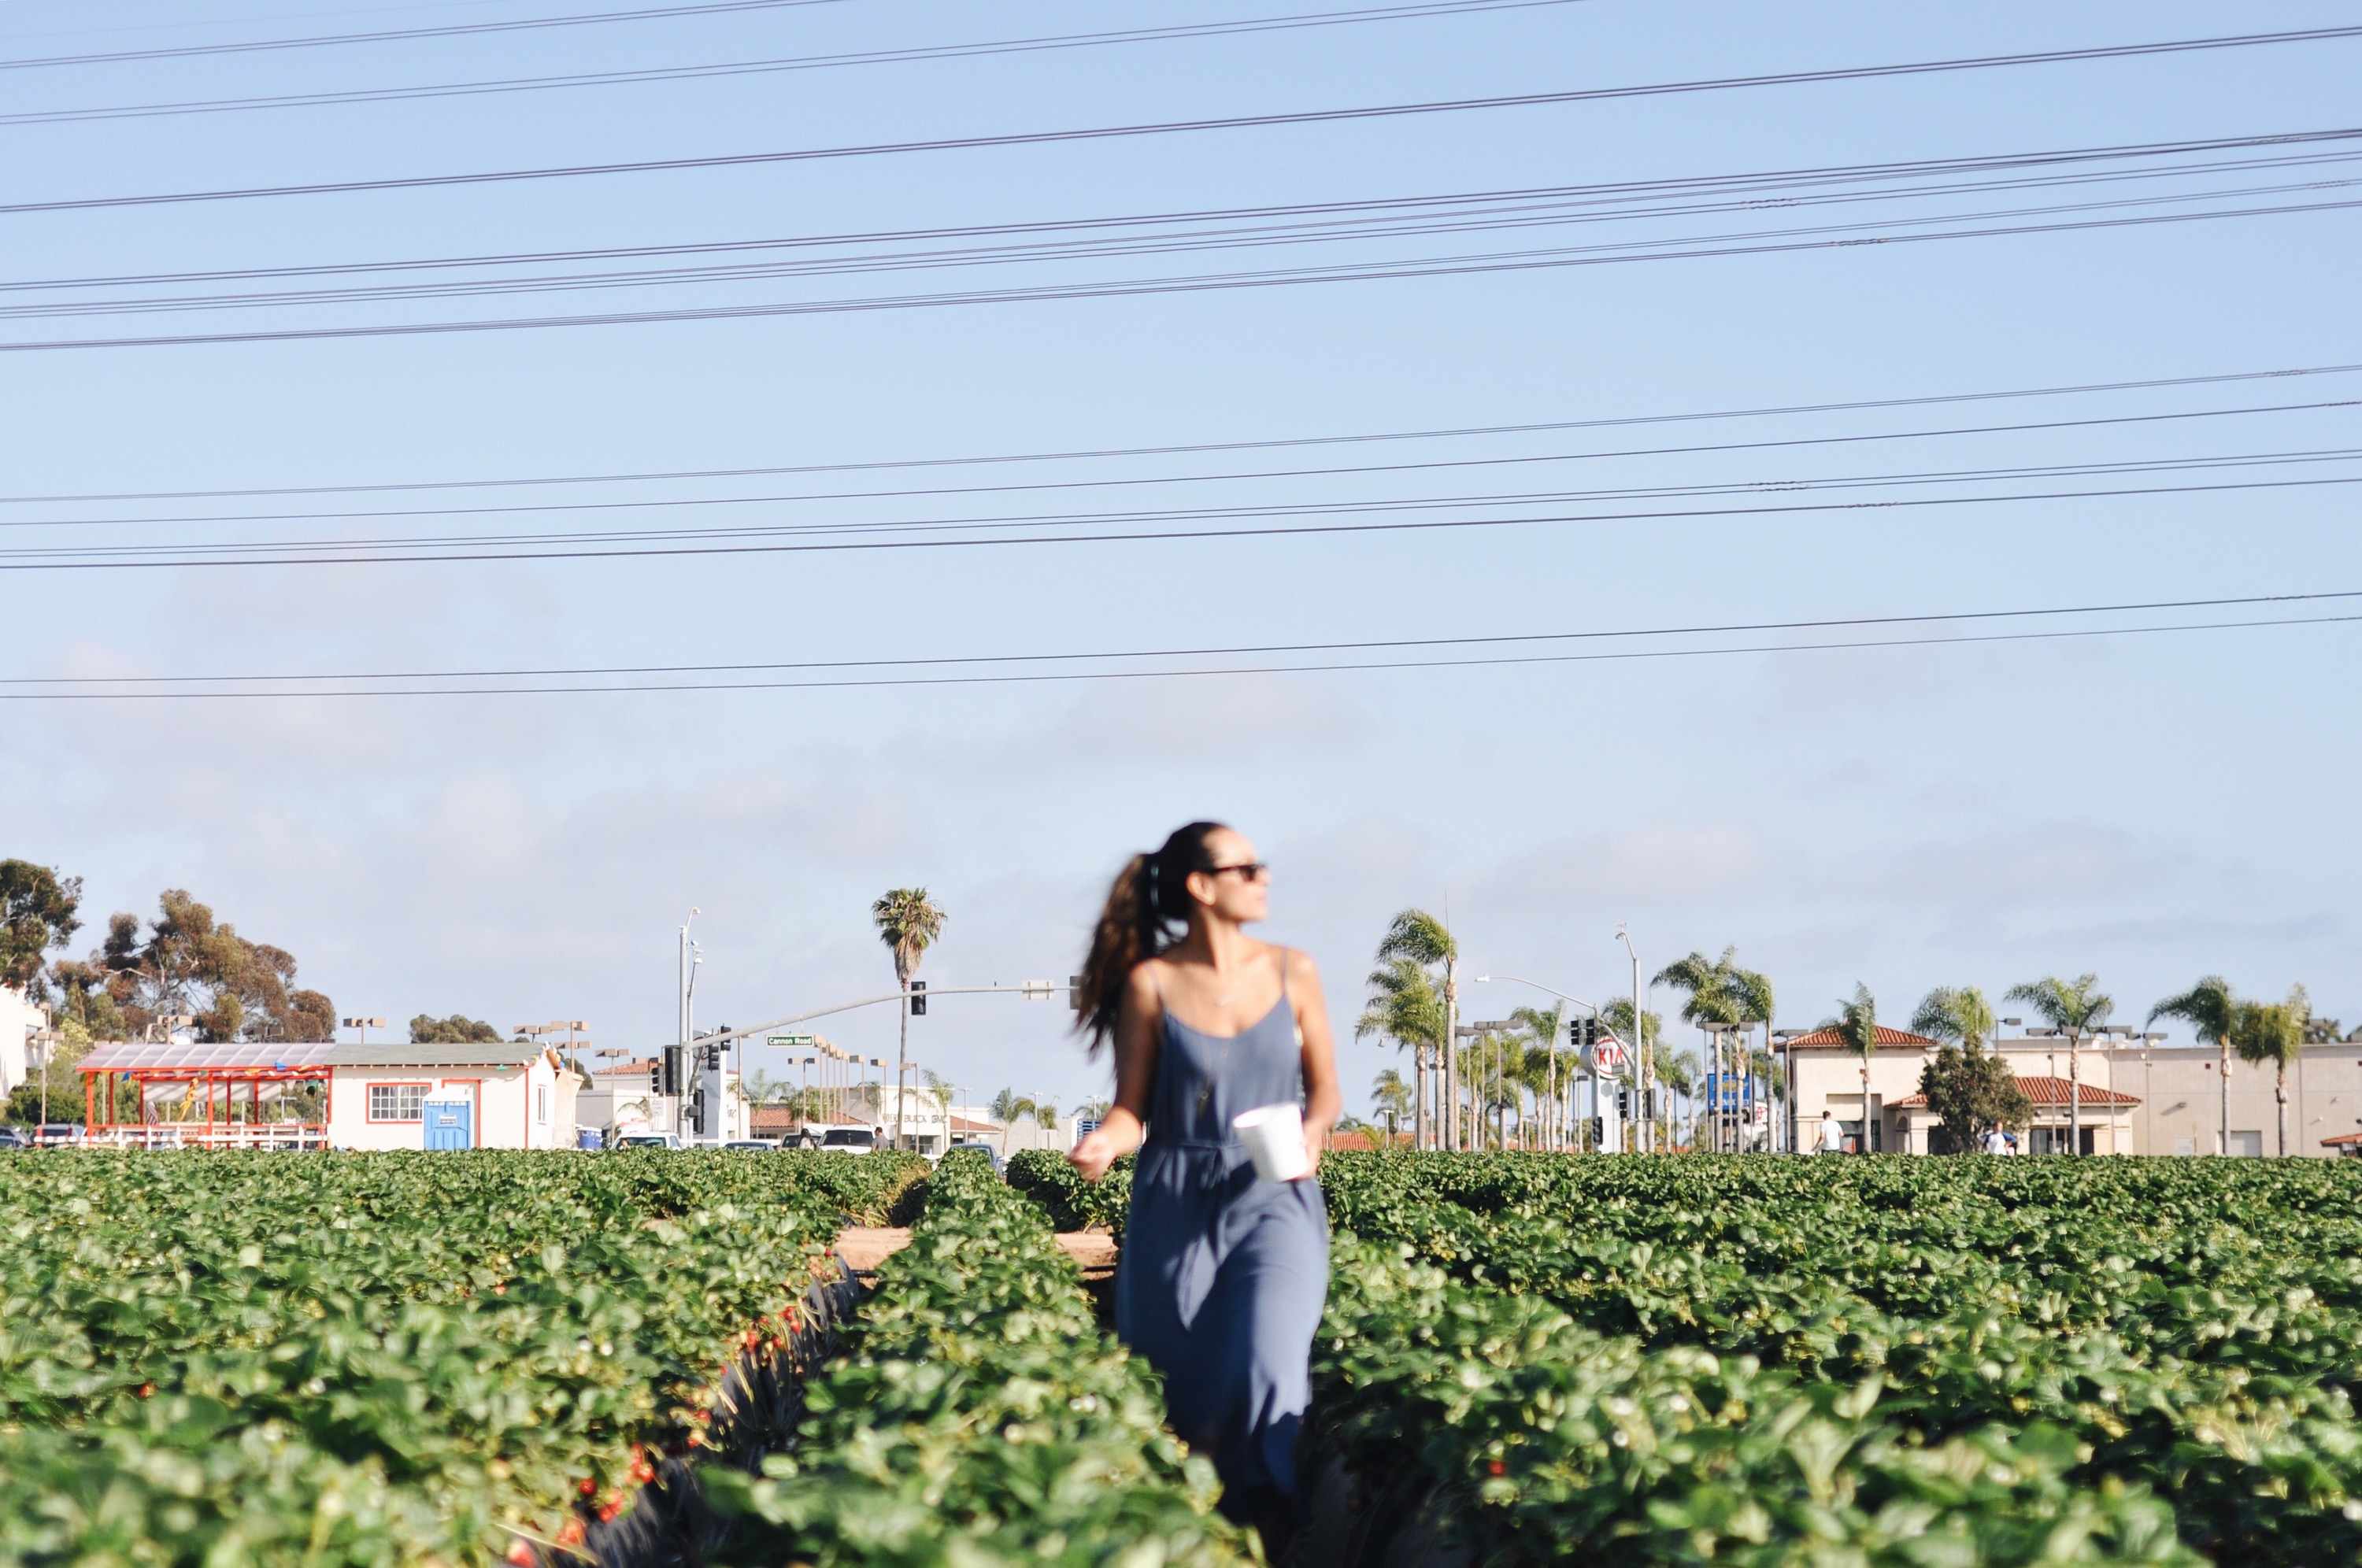 Pick your own strawberries in carlsbad ca elanaloo we spent the next while picking strawberries getting lost in the open rows seeing who could find the best ones snacking on the juicy sweet fruit like fandeluxe Gallery